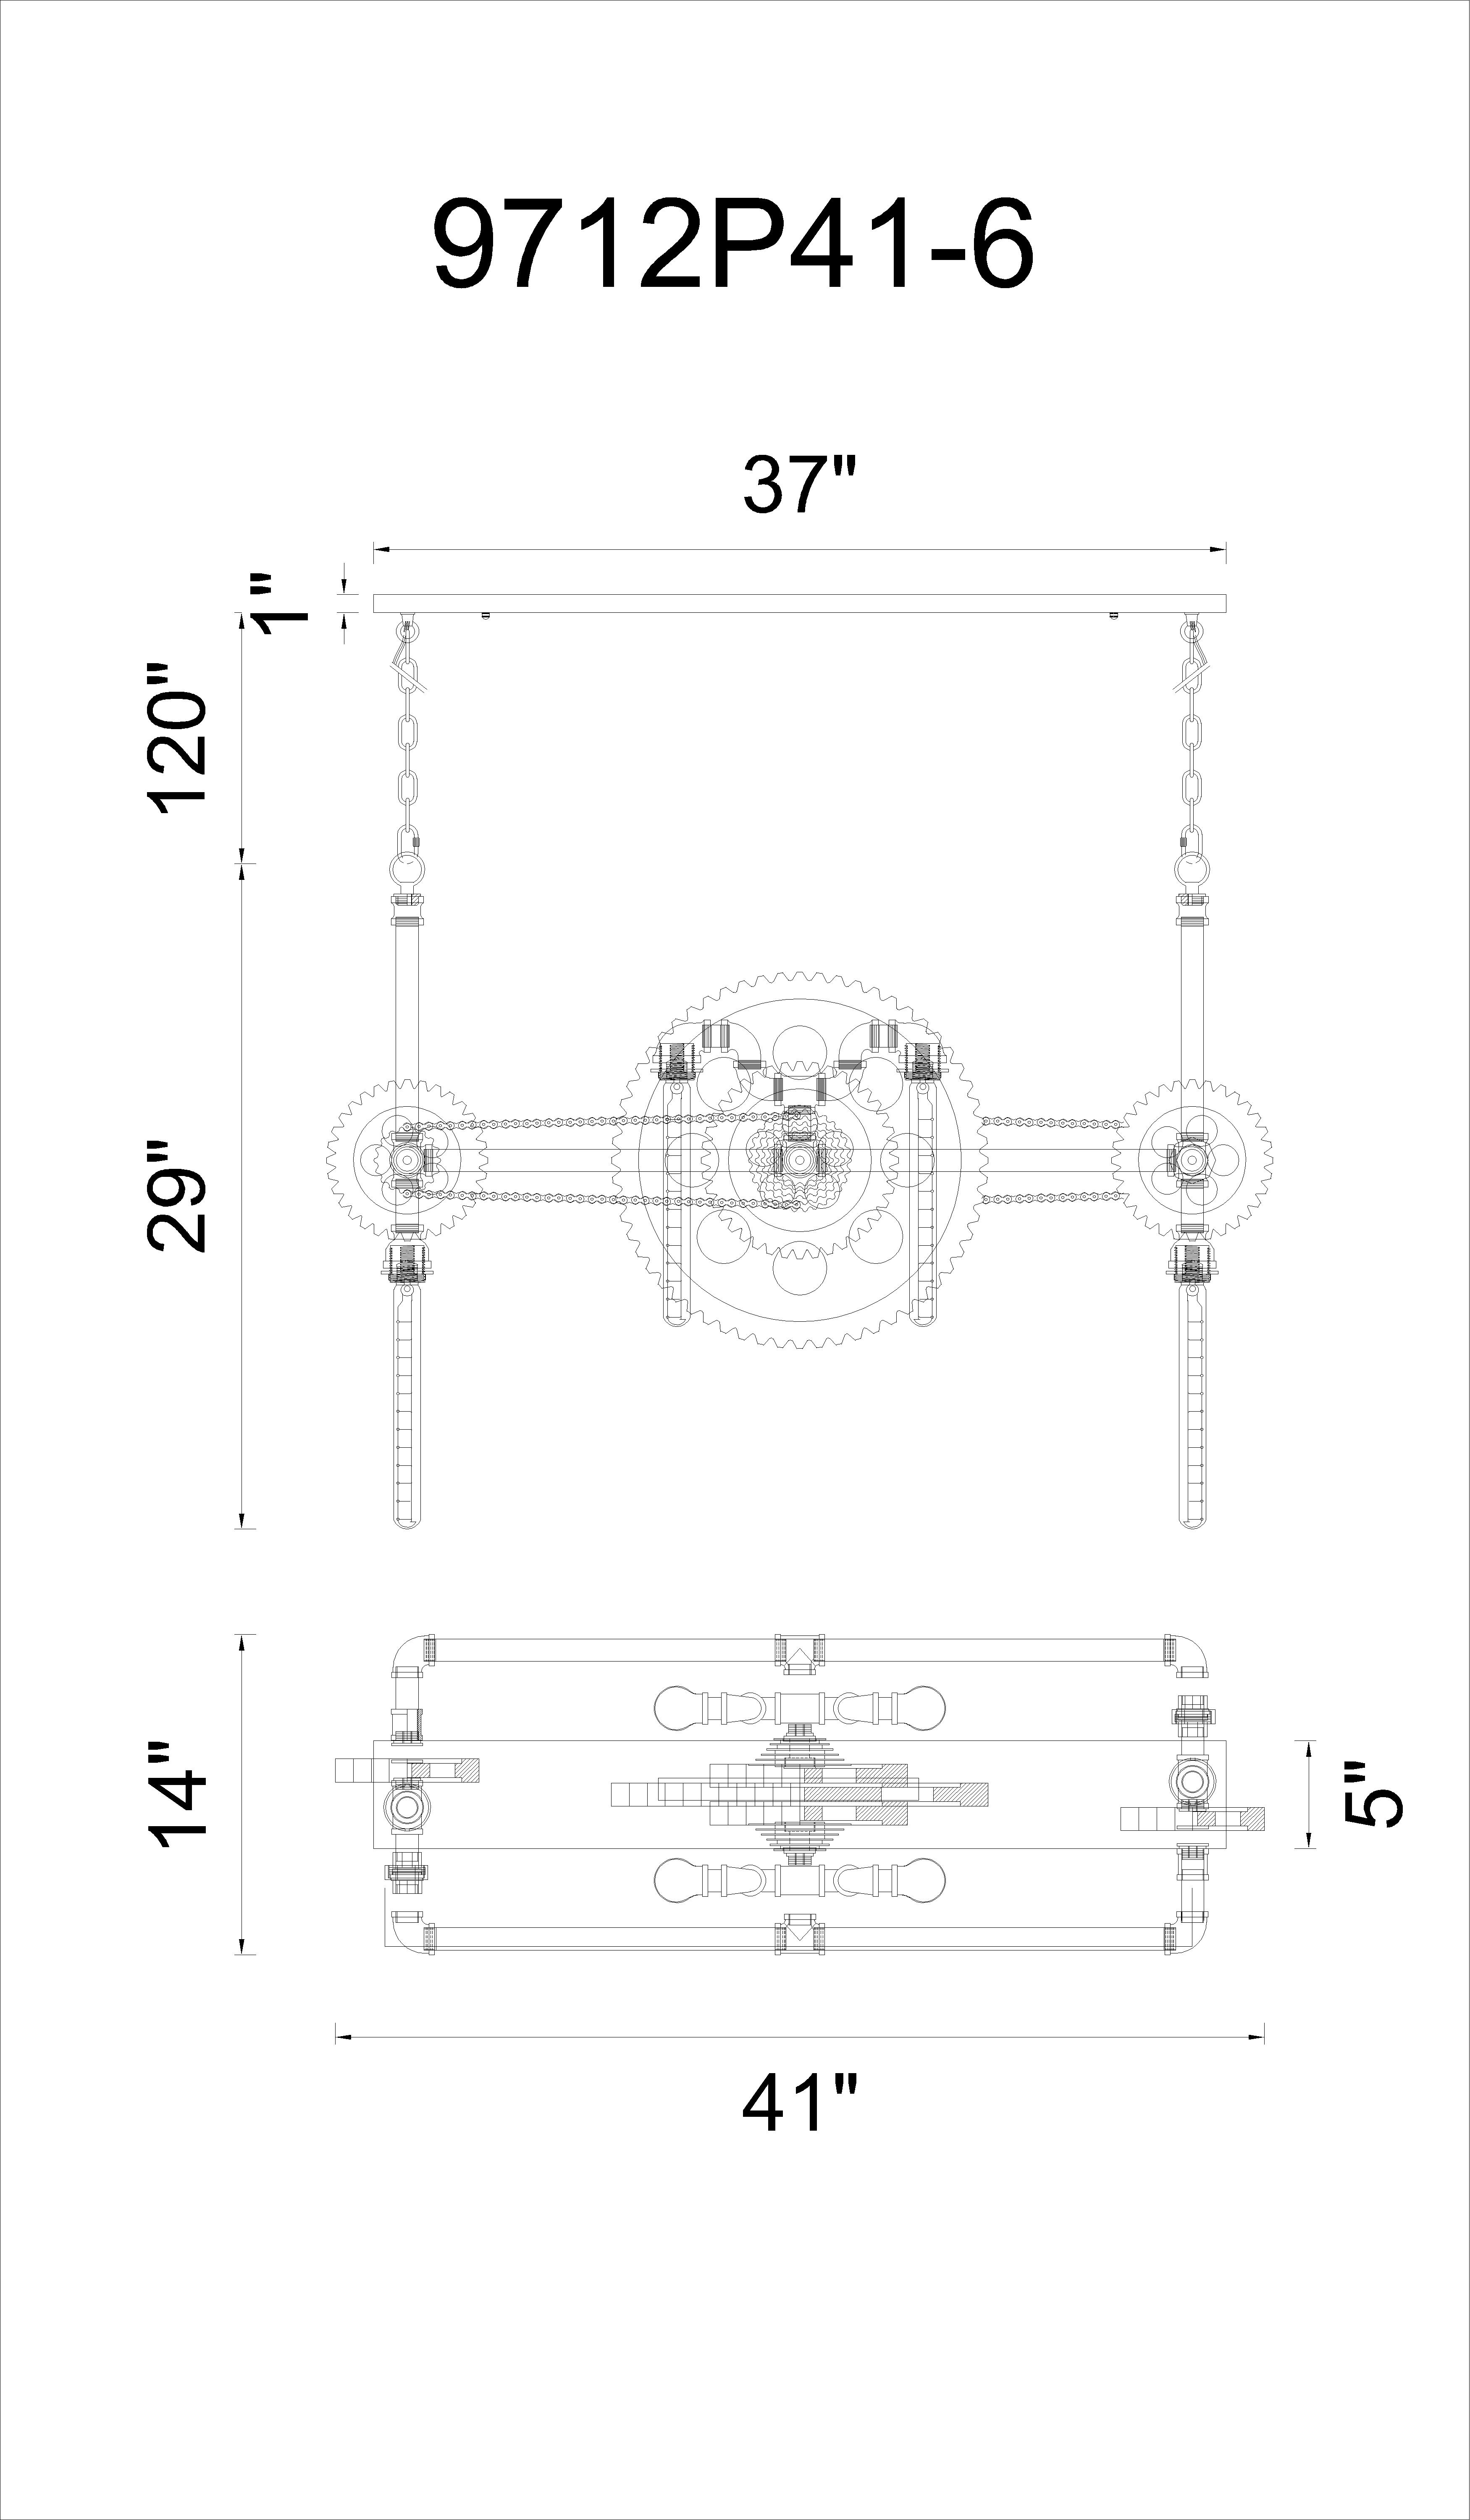 CWI Lighting Oder 6 Light Down Chandelier With Silver Gray Model: 9712P41-6-187 Line Drawing